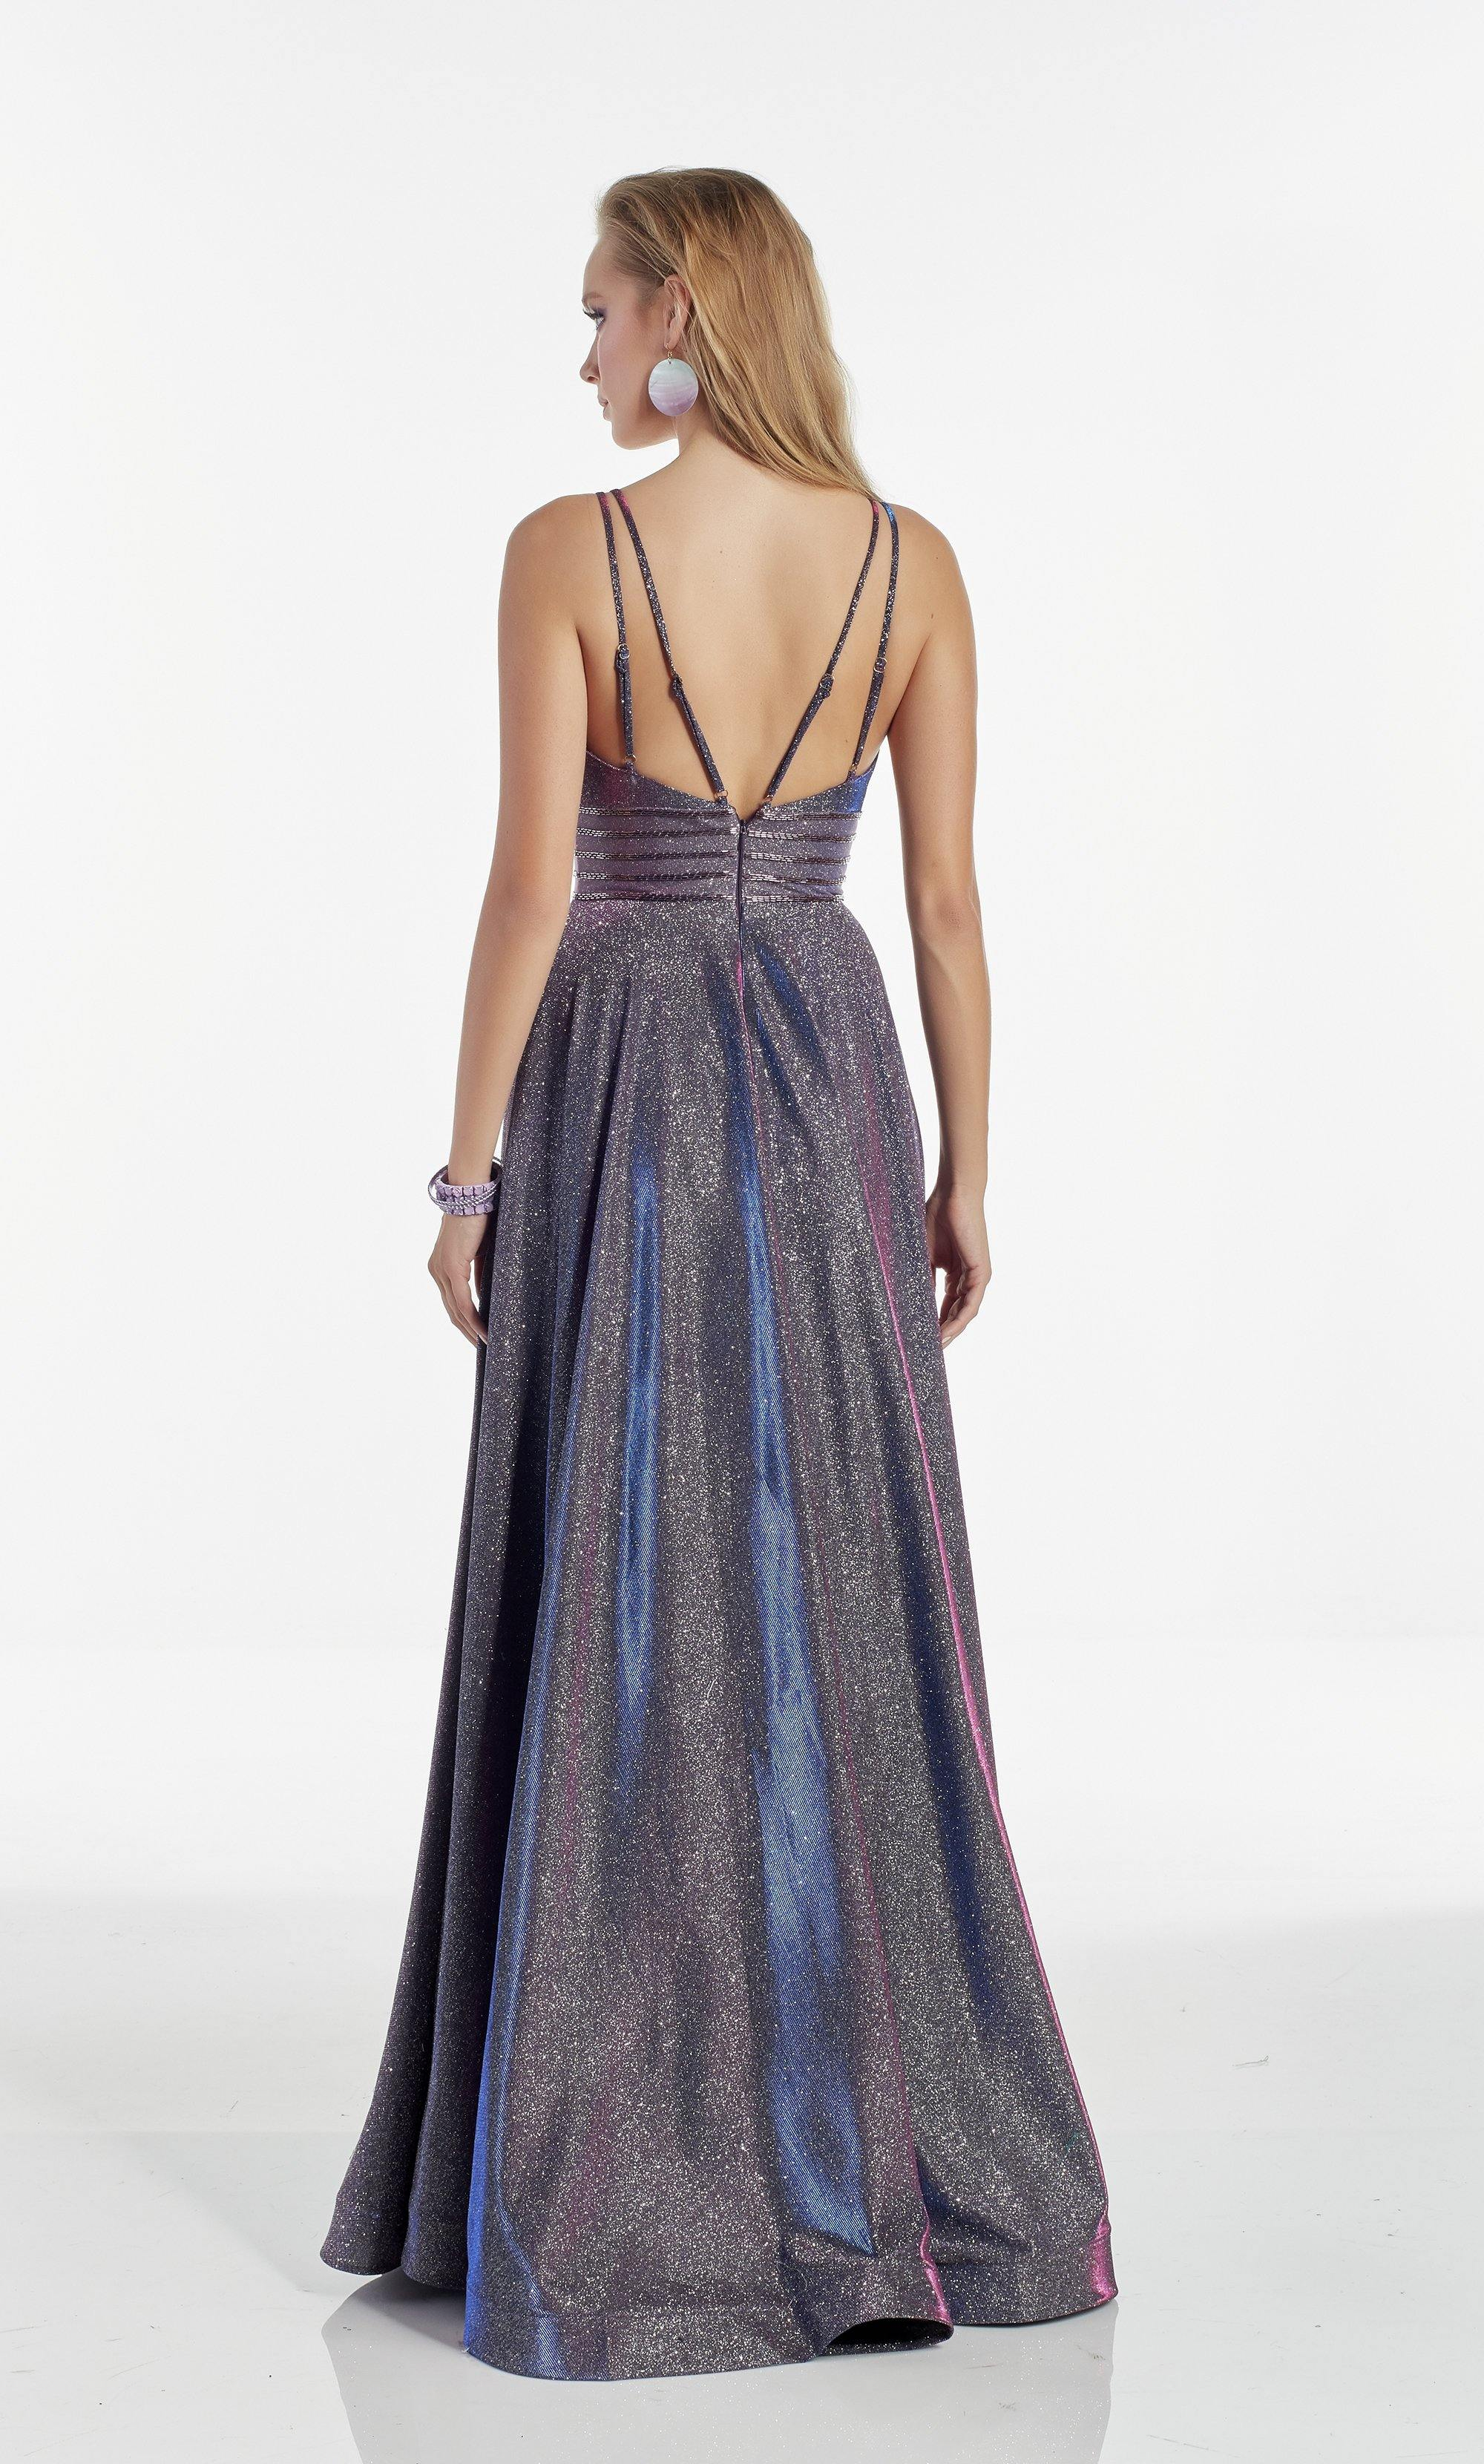 Iridescent Blue formal dress with a plunging neckline and beaded waist